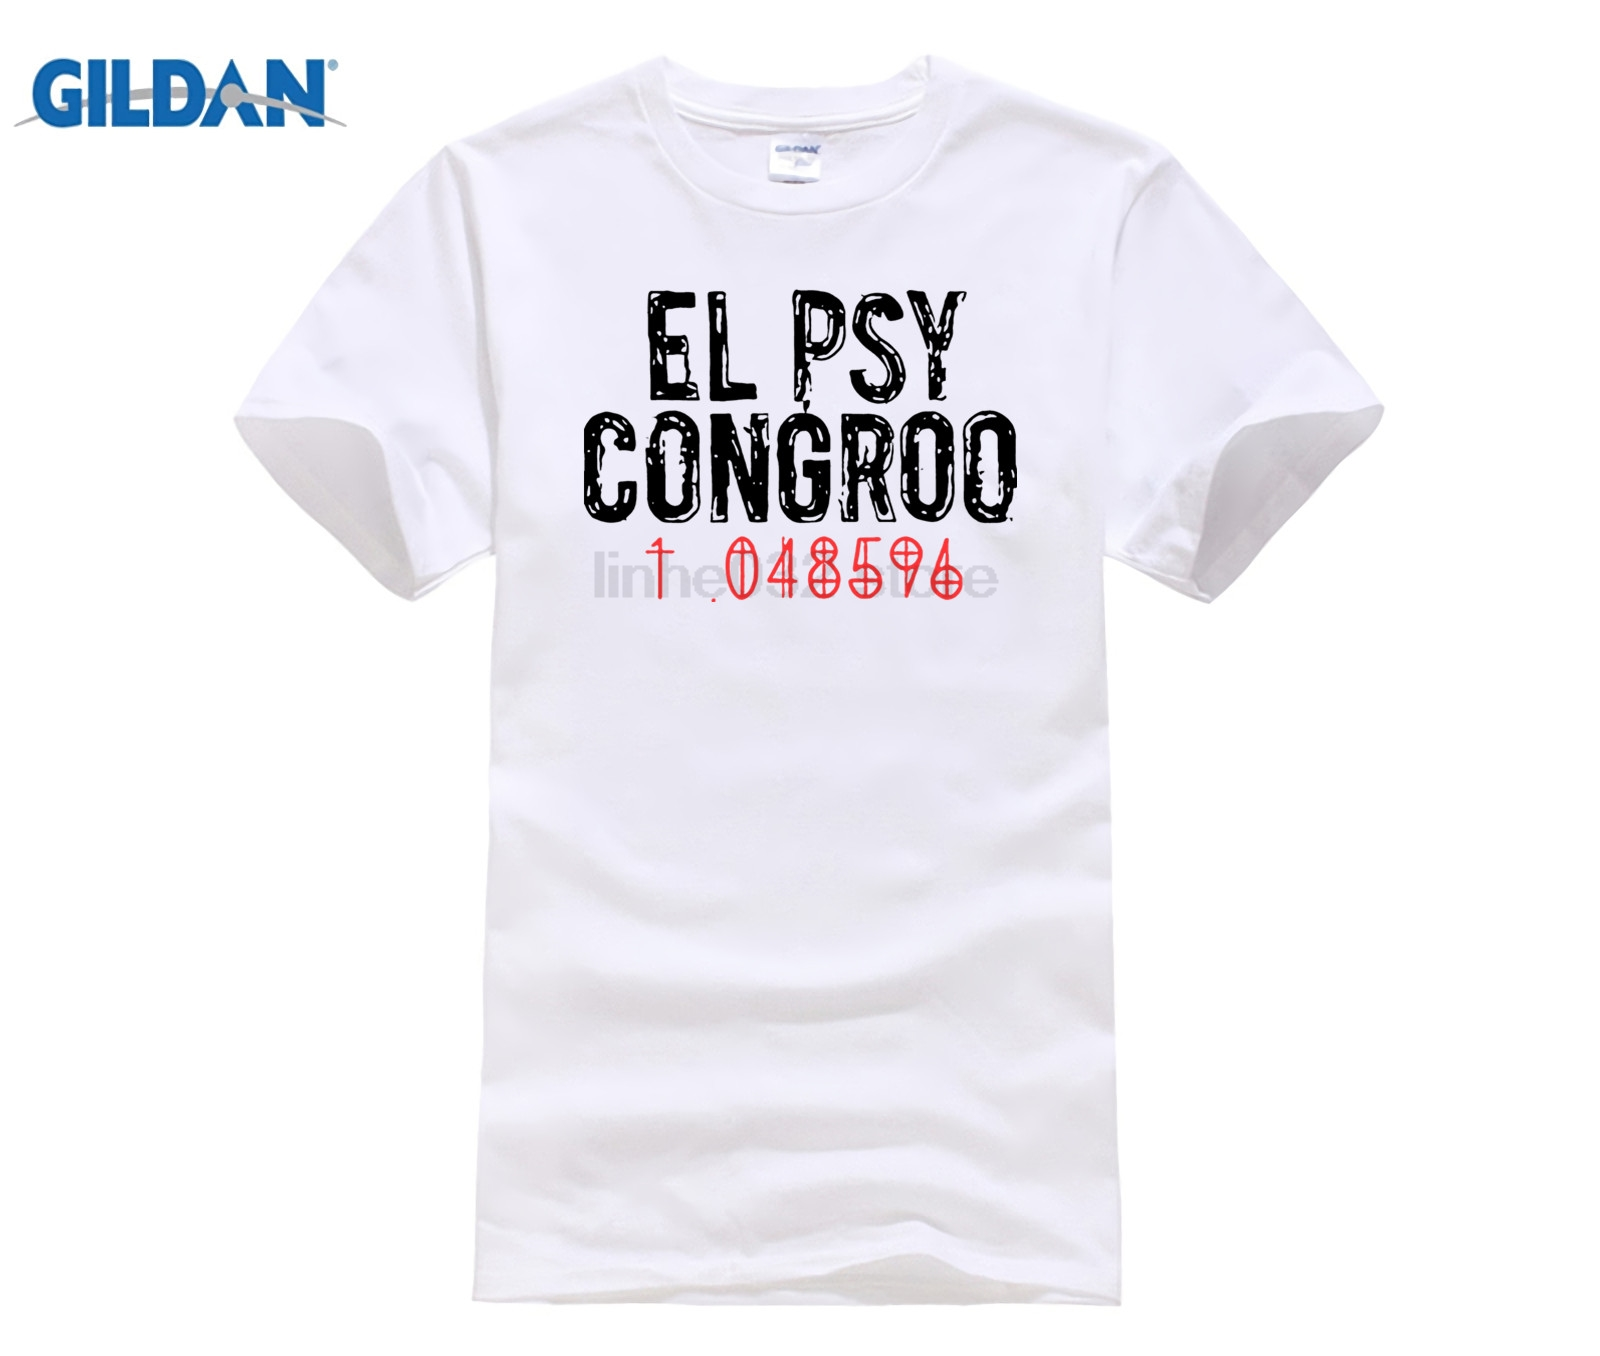 New Steins Gate El Psy Congroo Anime Manga Mens Black T-shirt Size S To 3xl Cool Slim Fit Letter Printed Top Tee T Shirt T-shirts